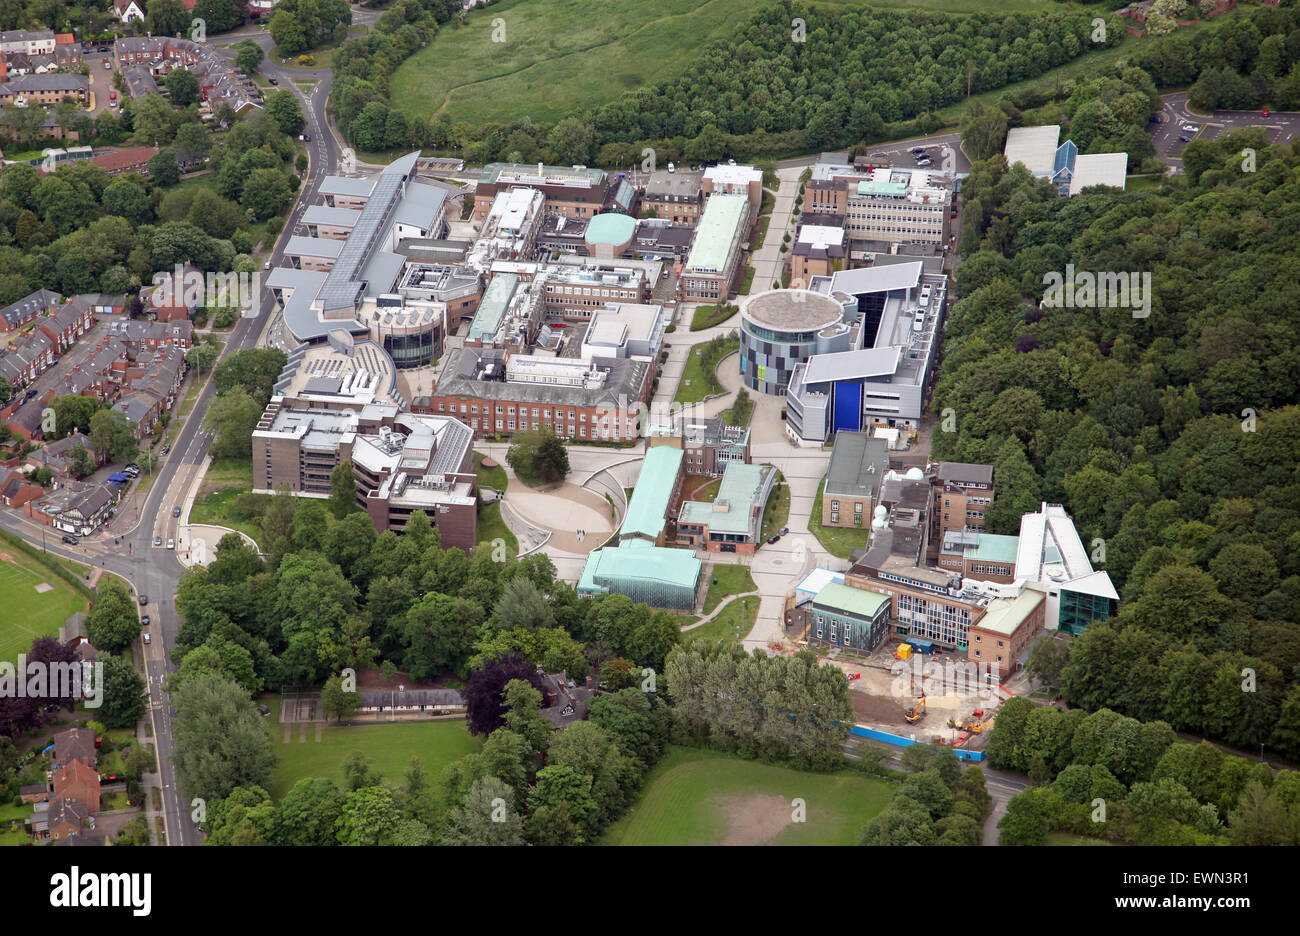 aerial view of various Durham University colleges just south of the city centre, Durham, UK - Stock Image